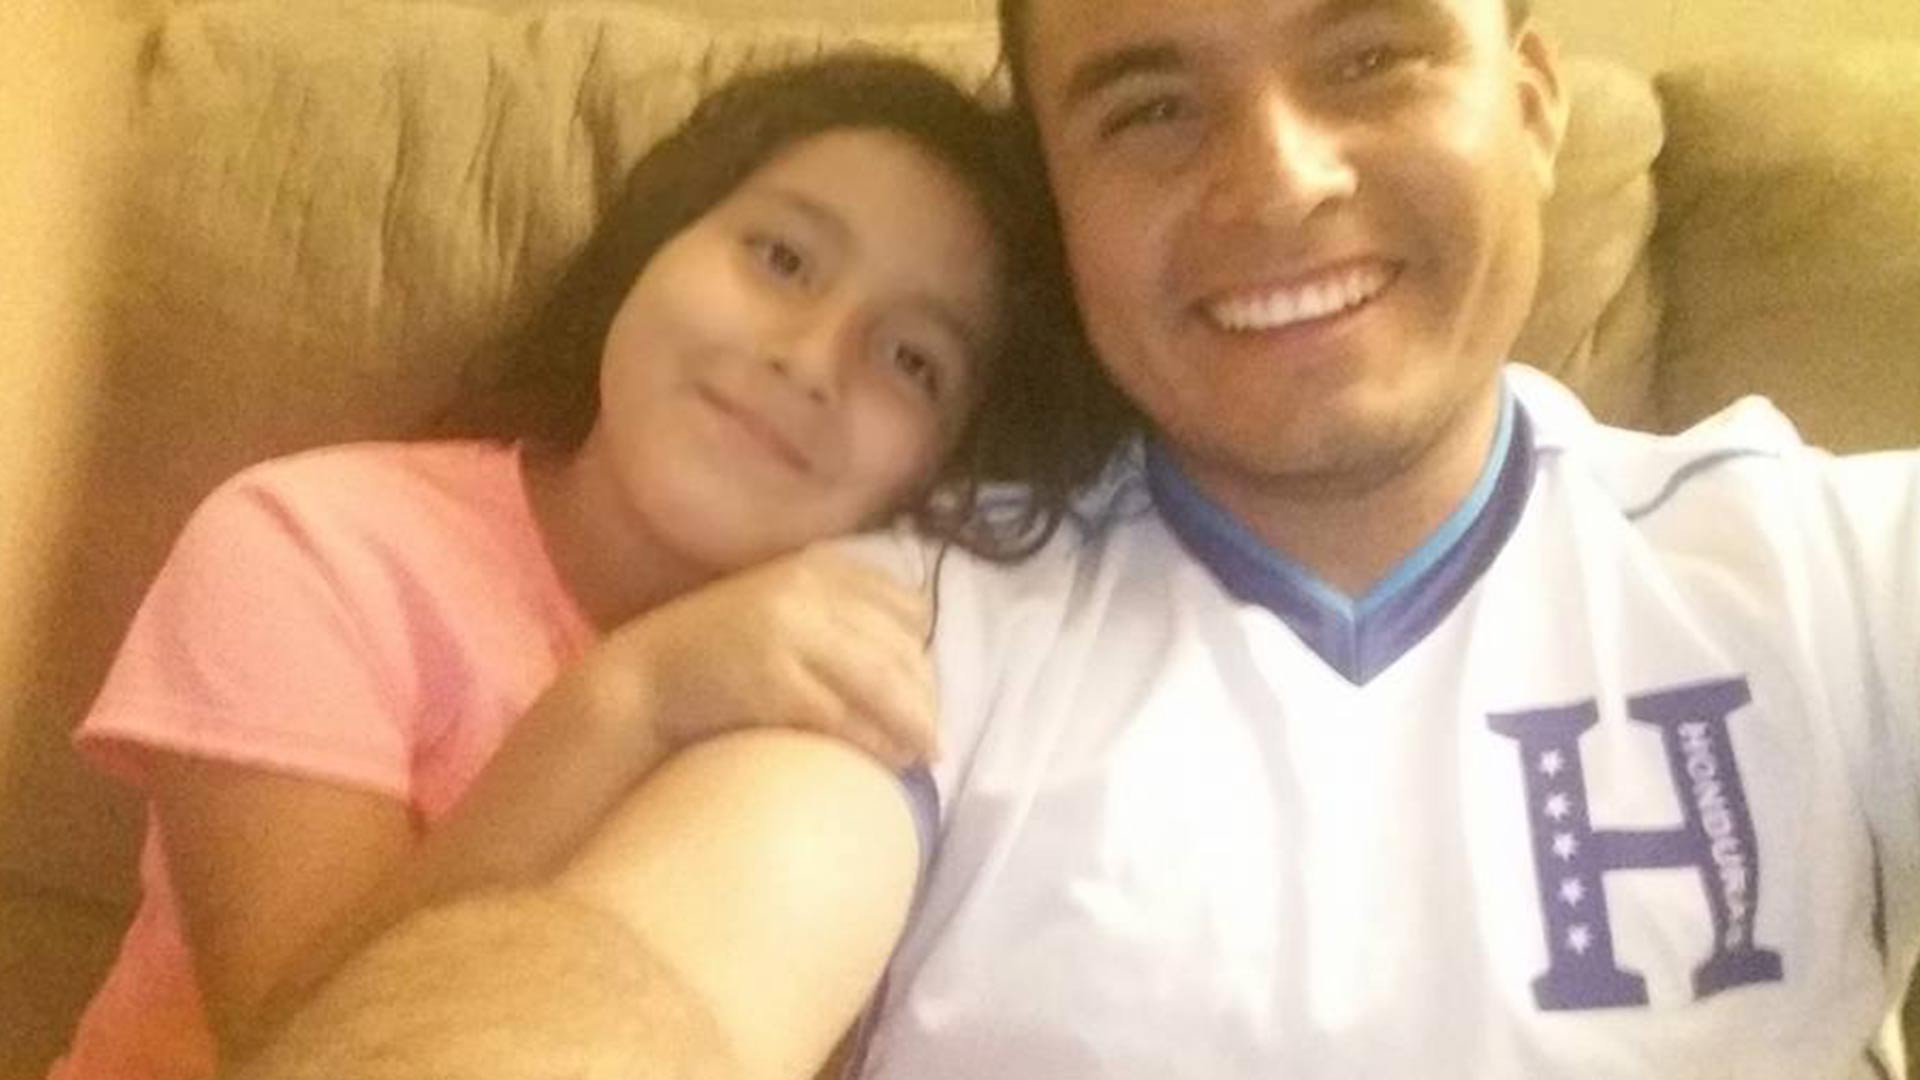 Yomeiny Mairena spends time with his daughter (2015)